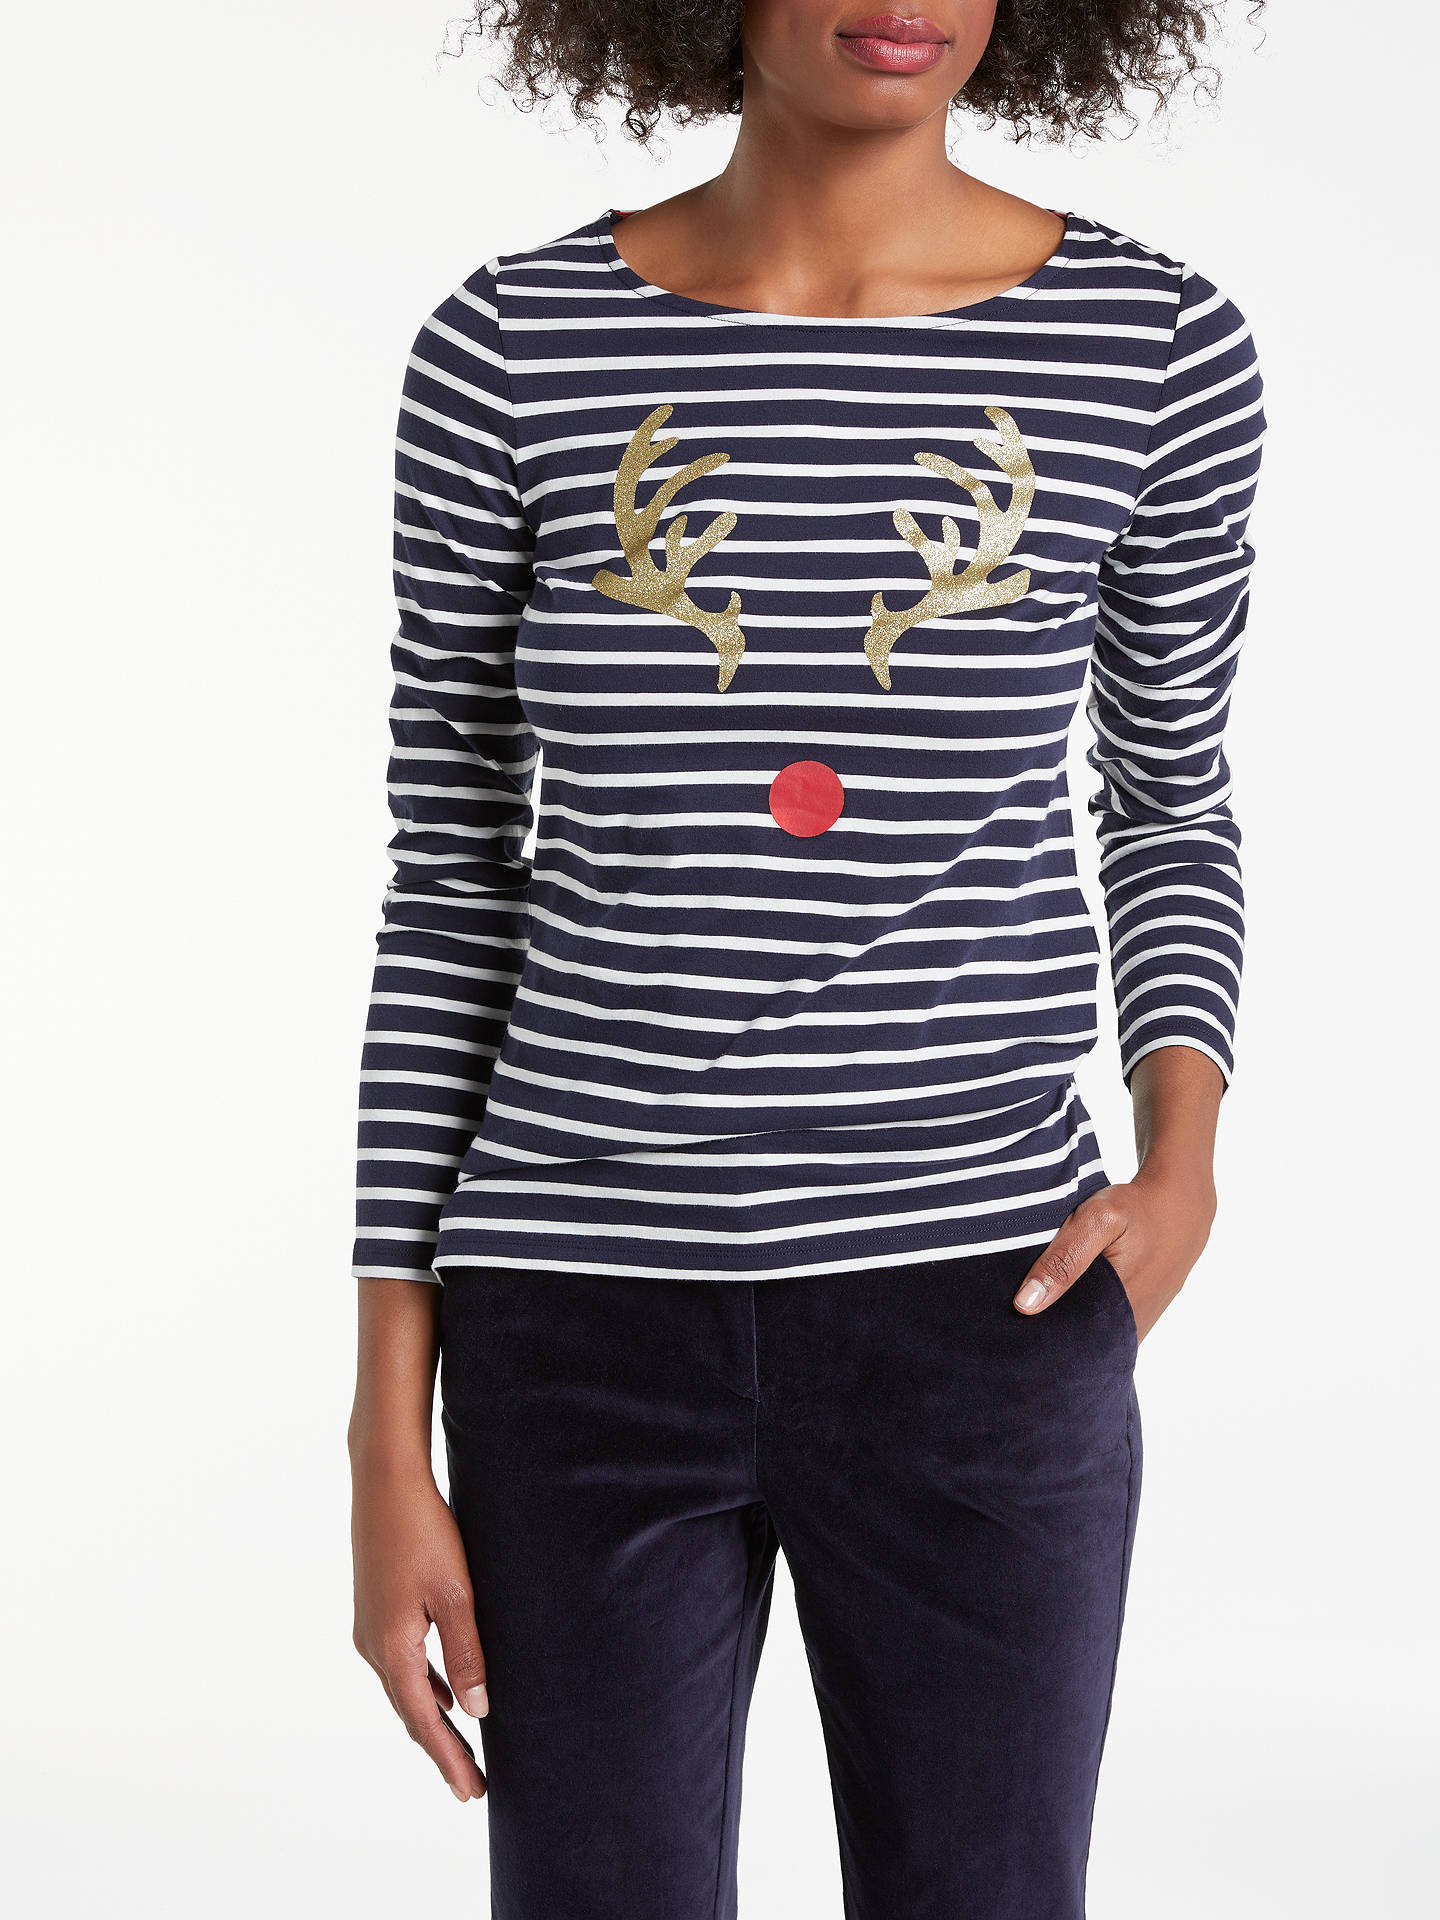 Buy Boden Christmas Reindeer Breton Top, Navy/Ivory, 12 Online at johnlewis.com